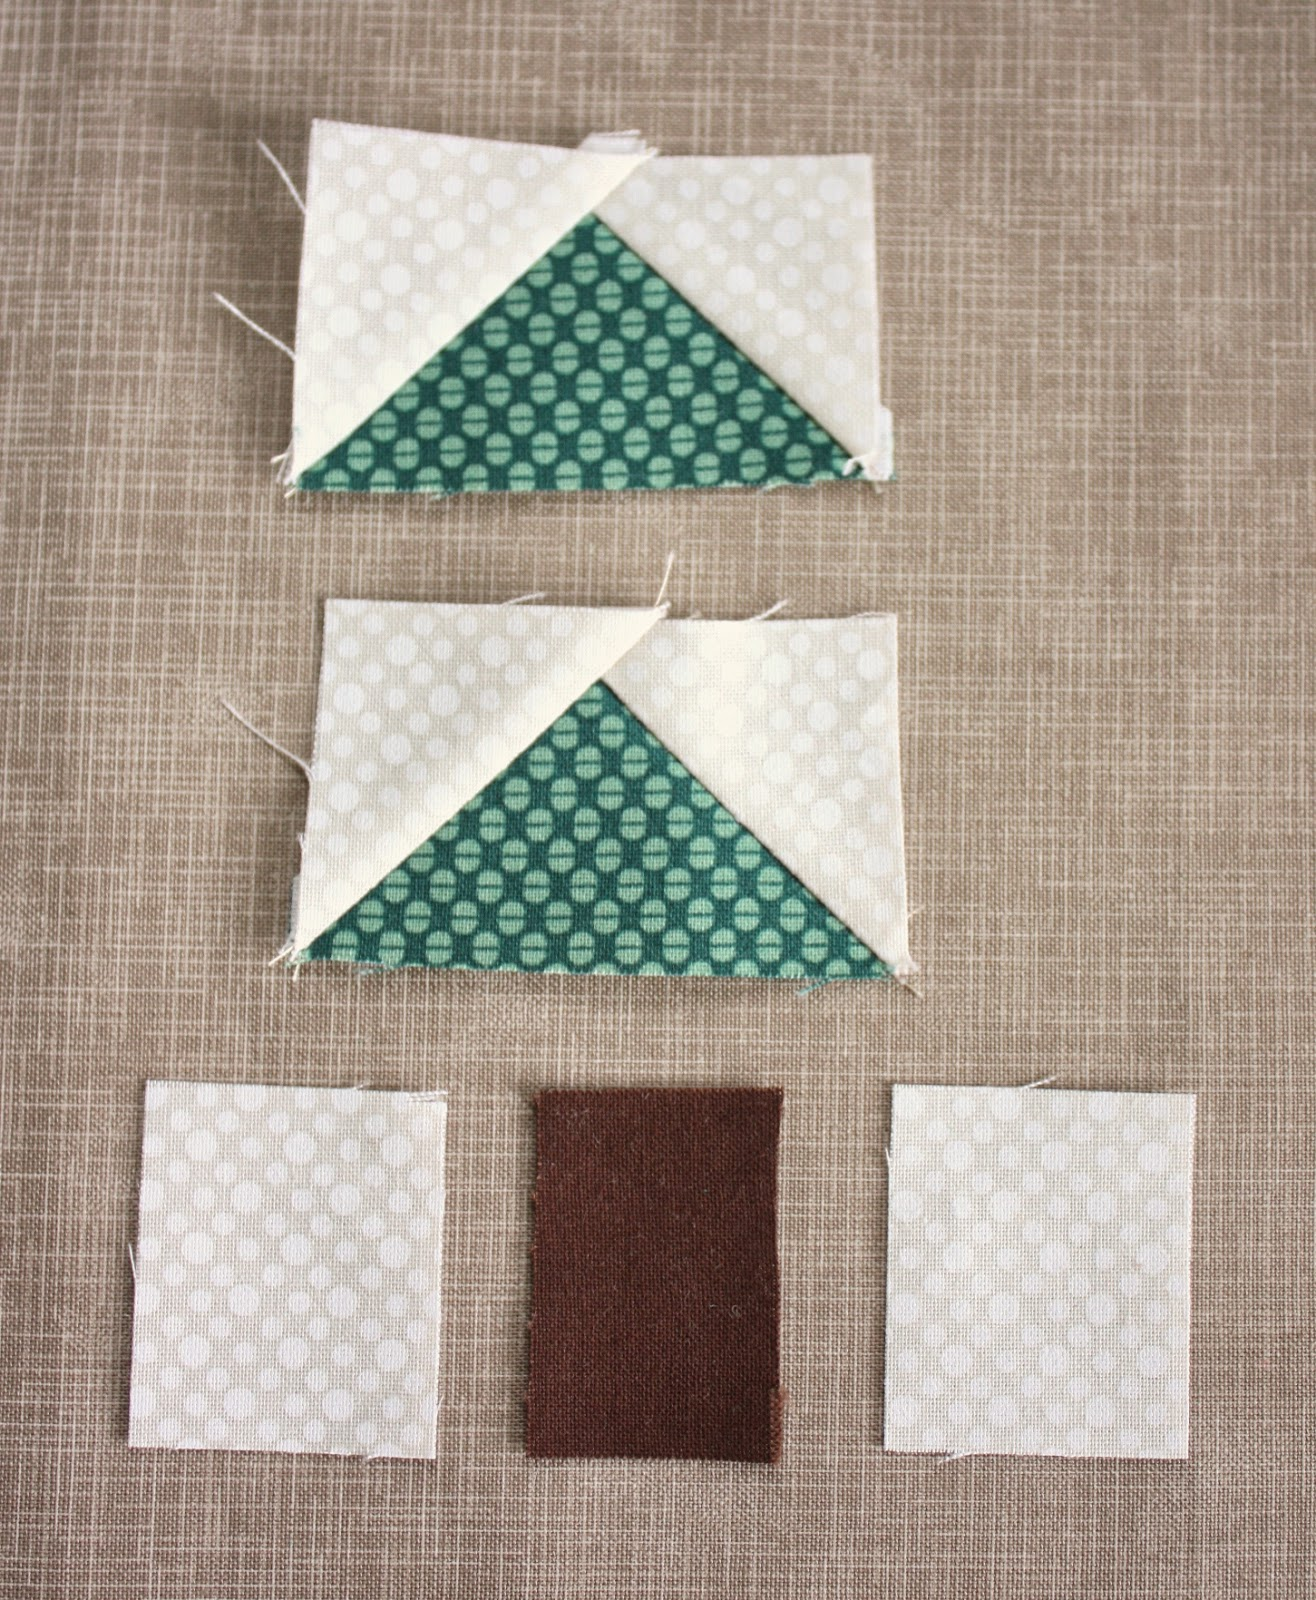 Folded fabric christmas ornaments patterns - Trim Corner 1 4 Away From Seam Fold White Triangle Open And Press Seam Toward The Triangle Repeat With Second Set Of White Squares And Green Triangle